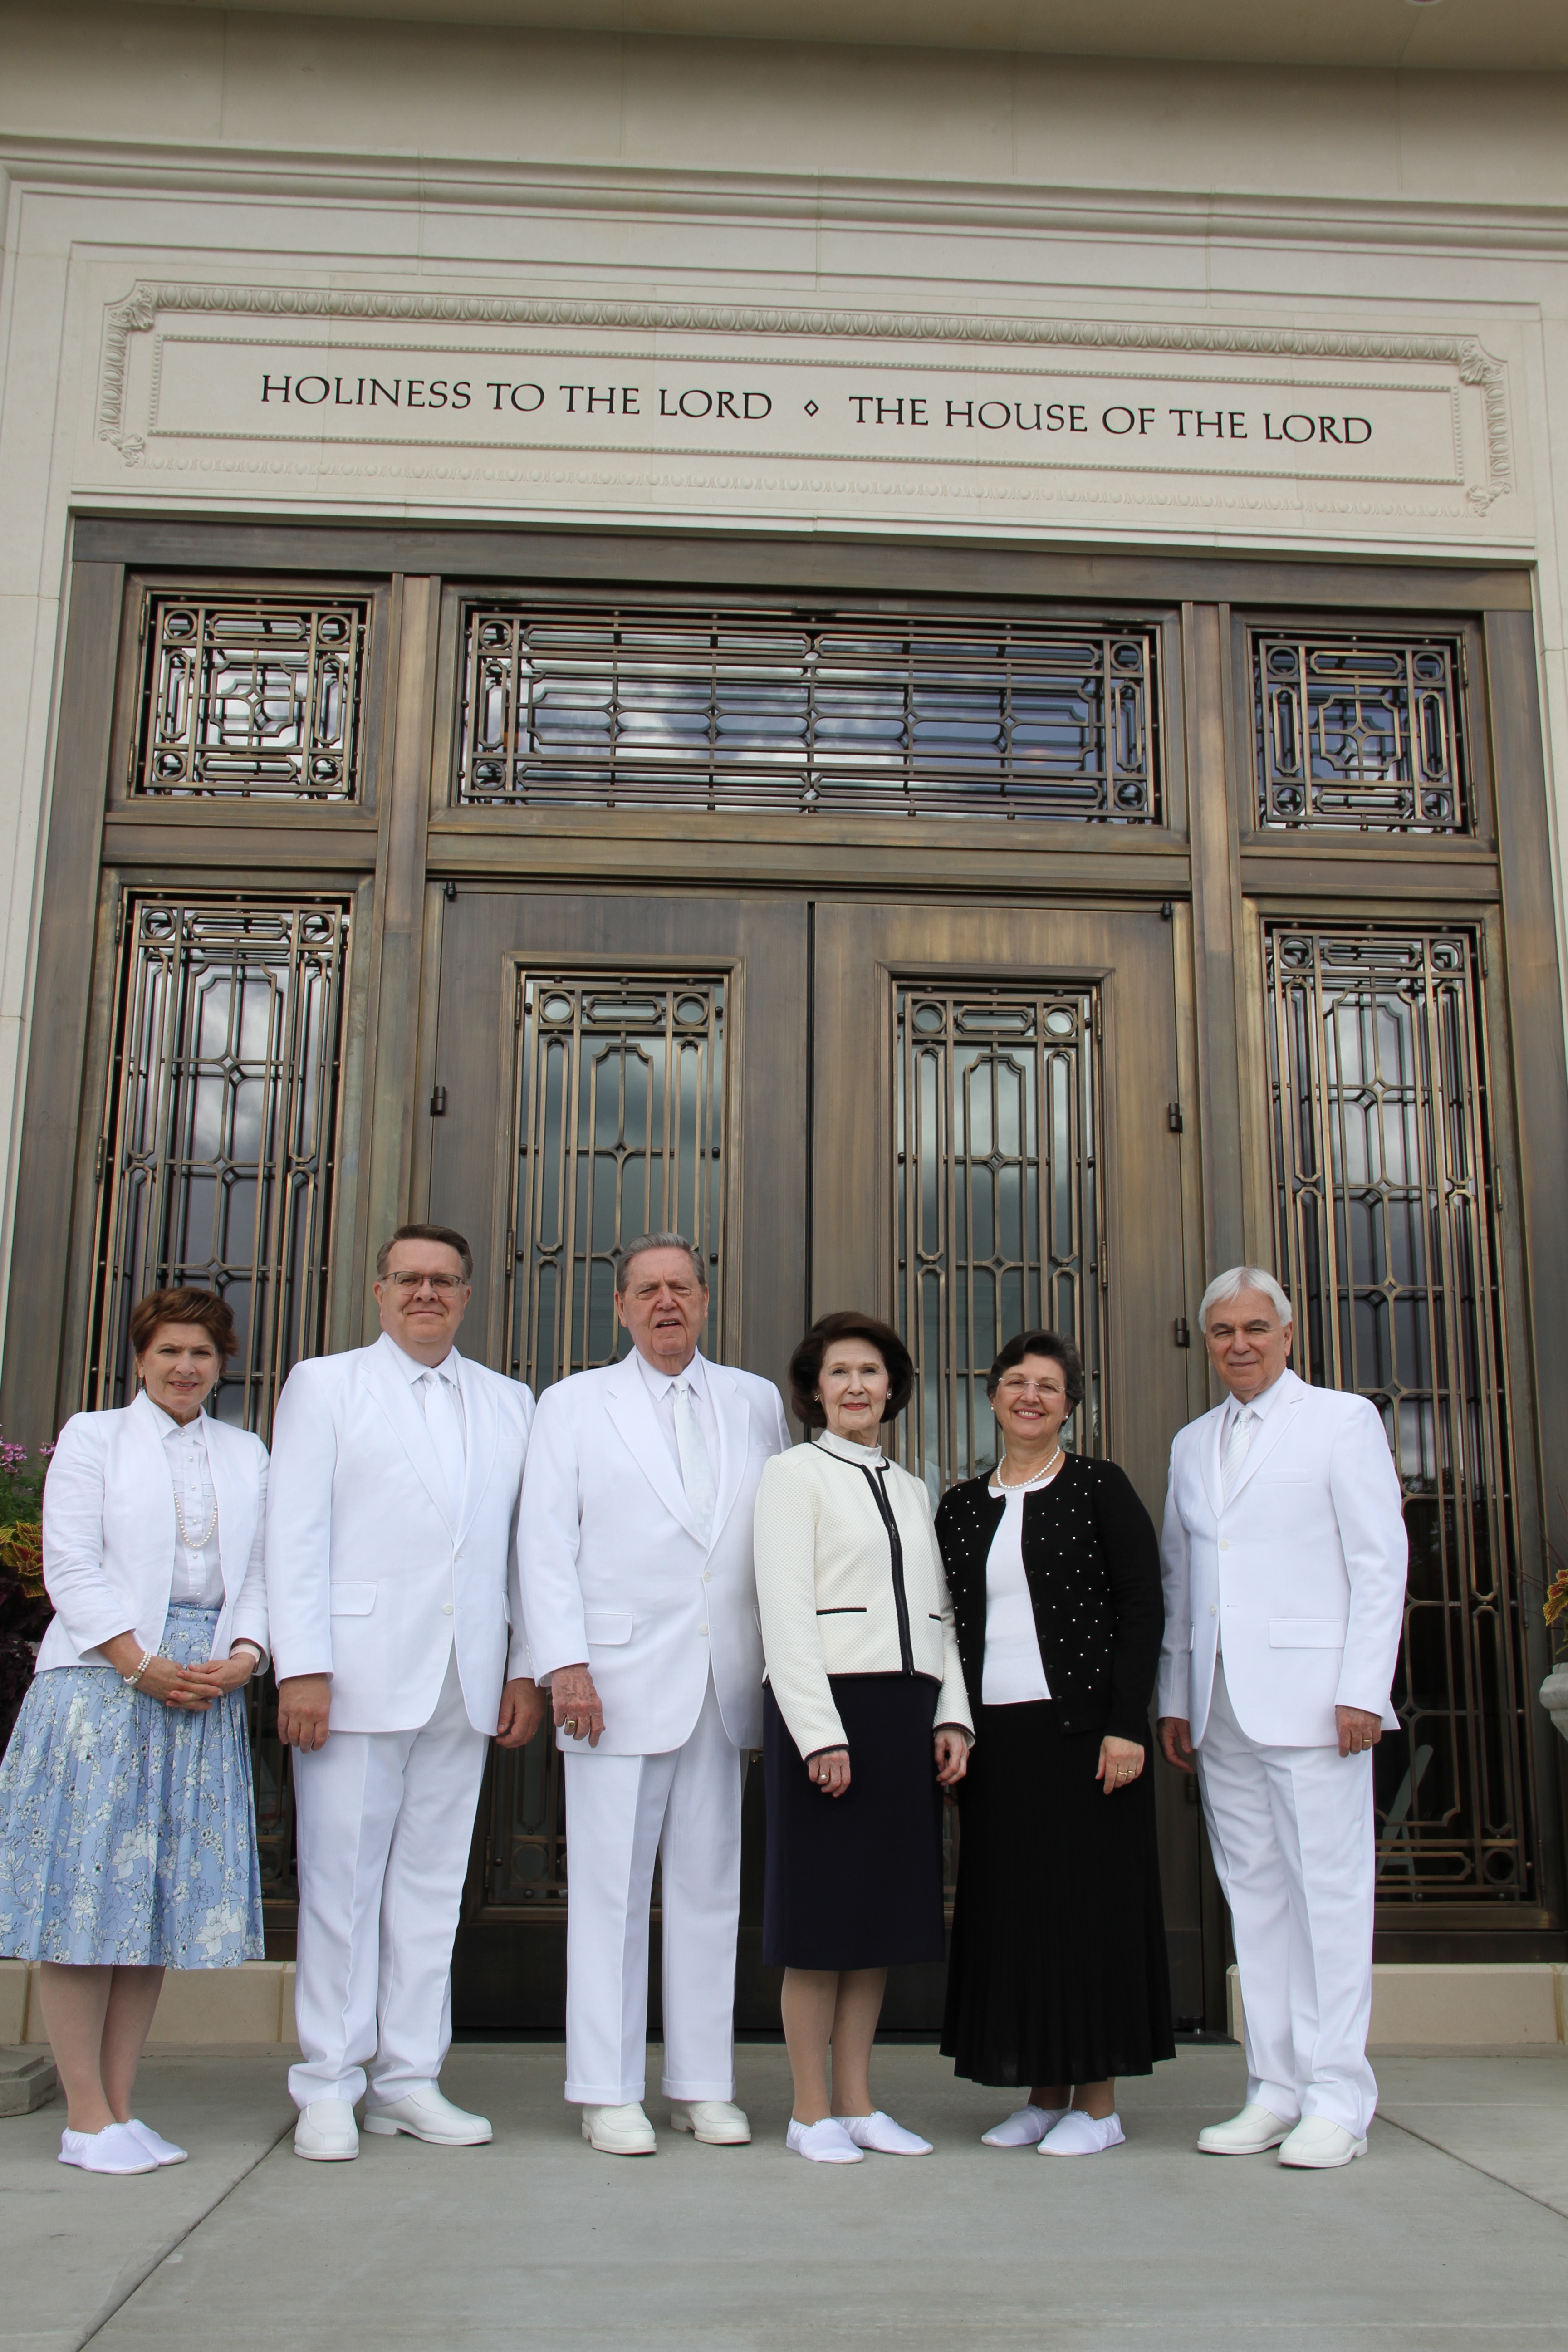 From left, Sister Jeri Whiting, Elder Scott D. Whiting, Elder Jeffrey R. Holland, Sister Patricia Holland, Sister Margareth Costa and Elder Claudio R. M. Costa pose in front of the temple prior to the rededication ceremony on May 5, 2019.